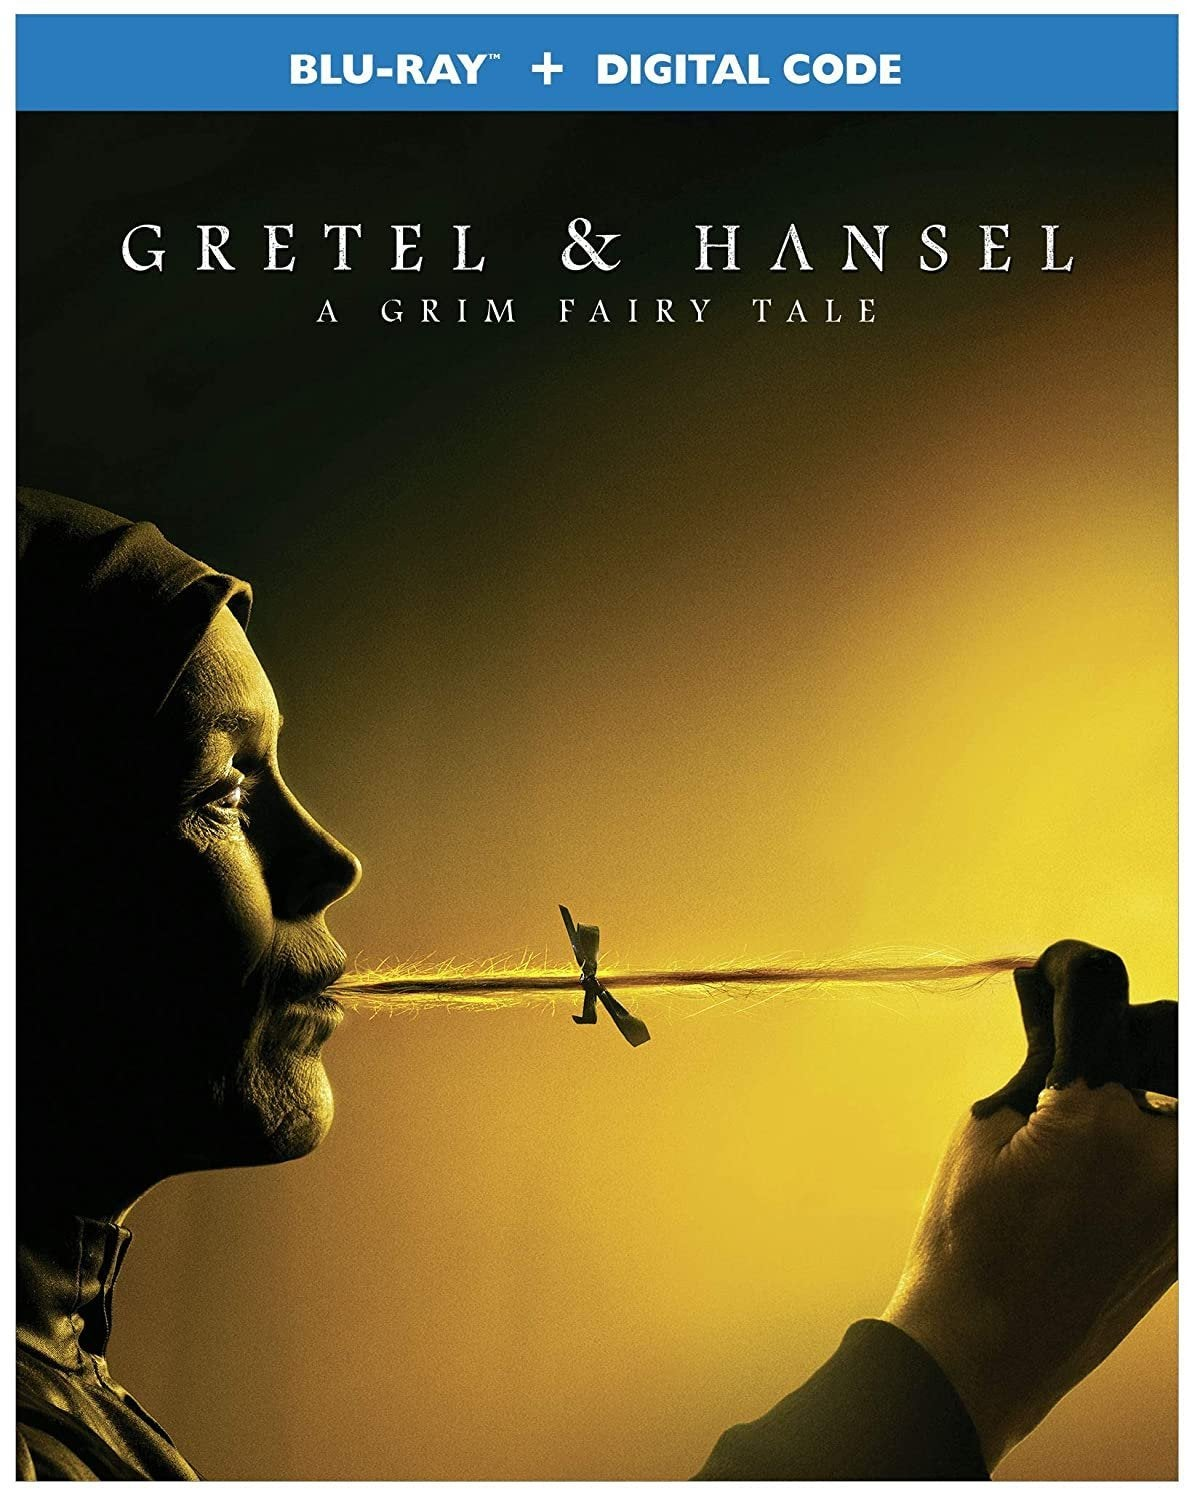 gretel and hansel blu ray cover 2020